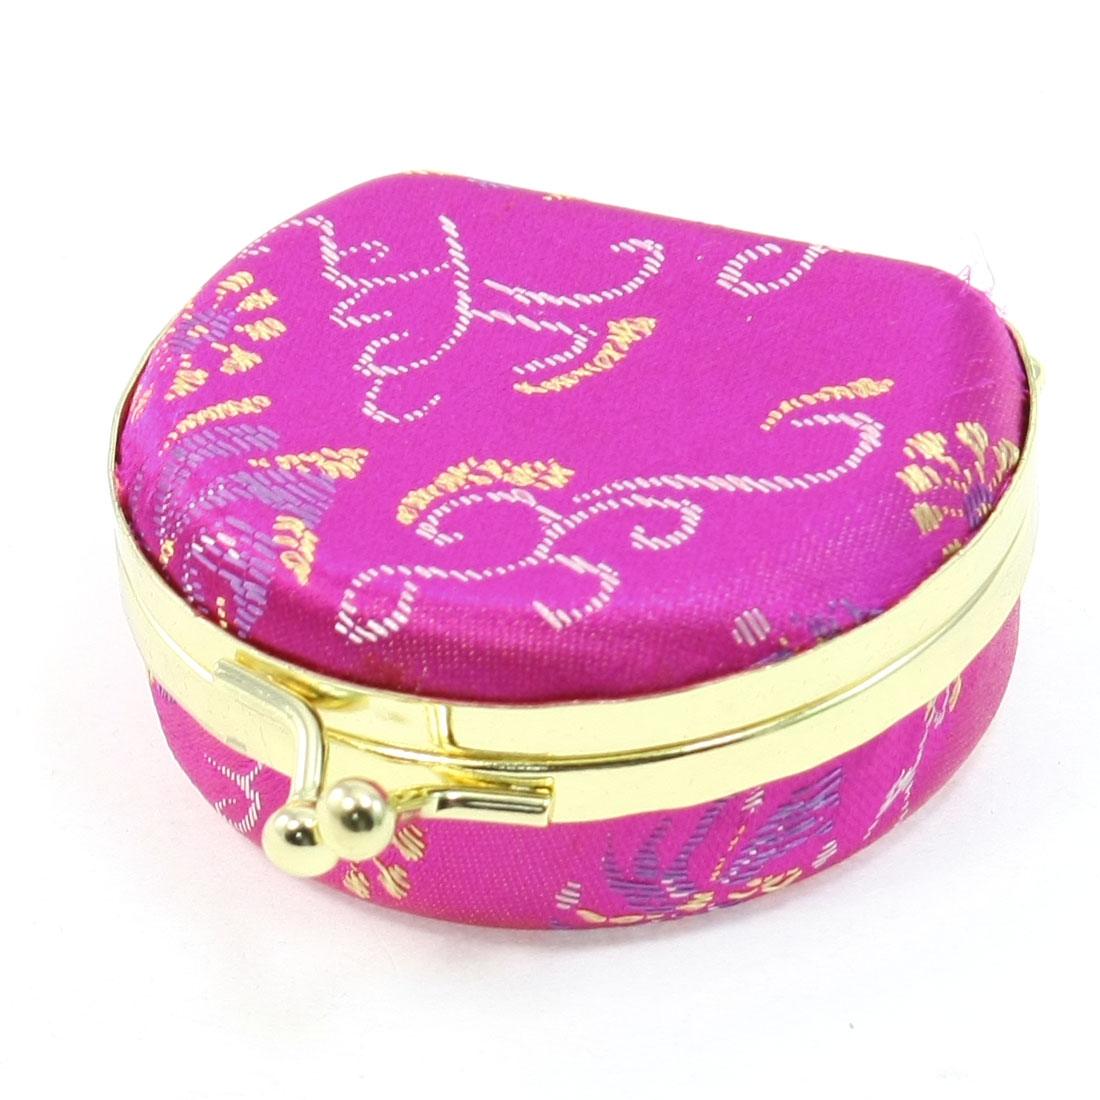 Embroidered Floral Coated Clutch Closure Flannel Lining Fuchsia Jewel Case